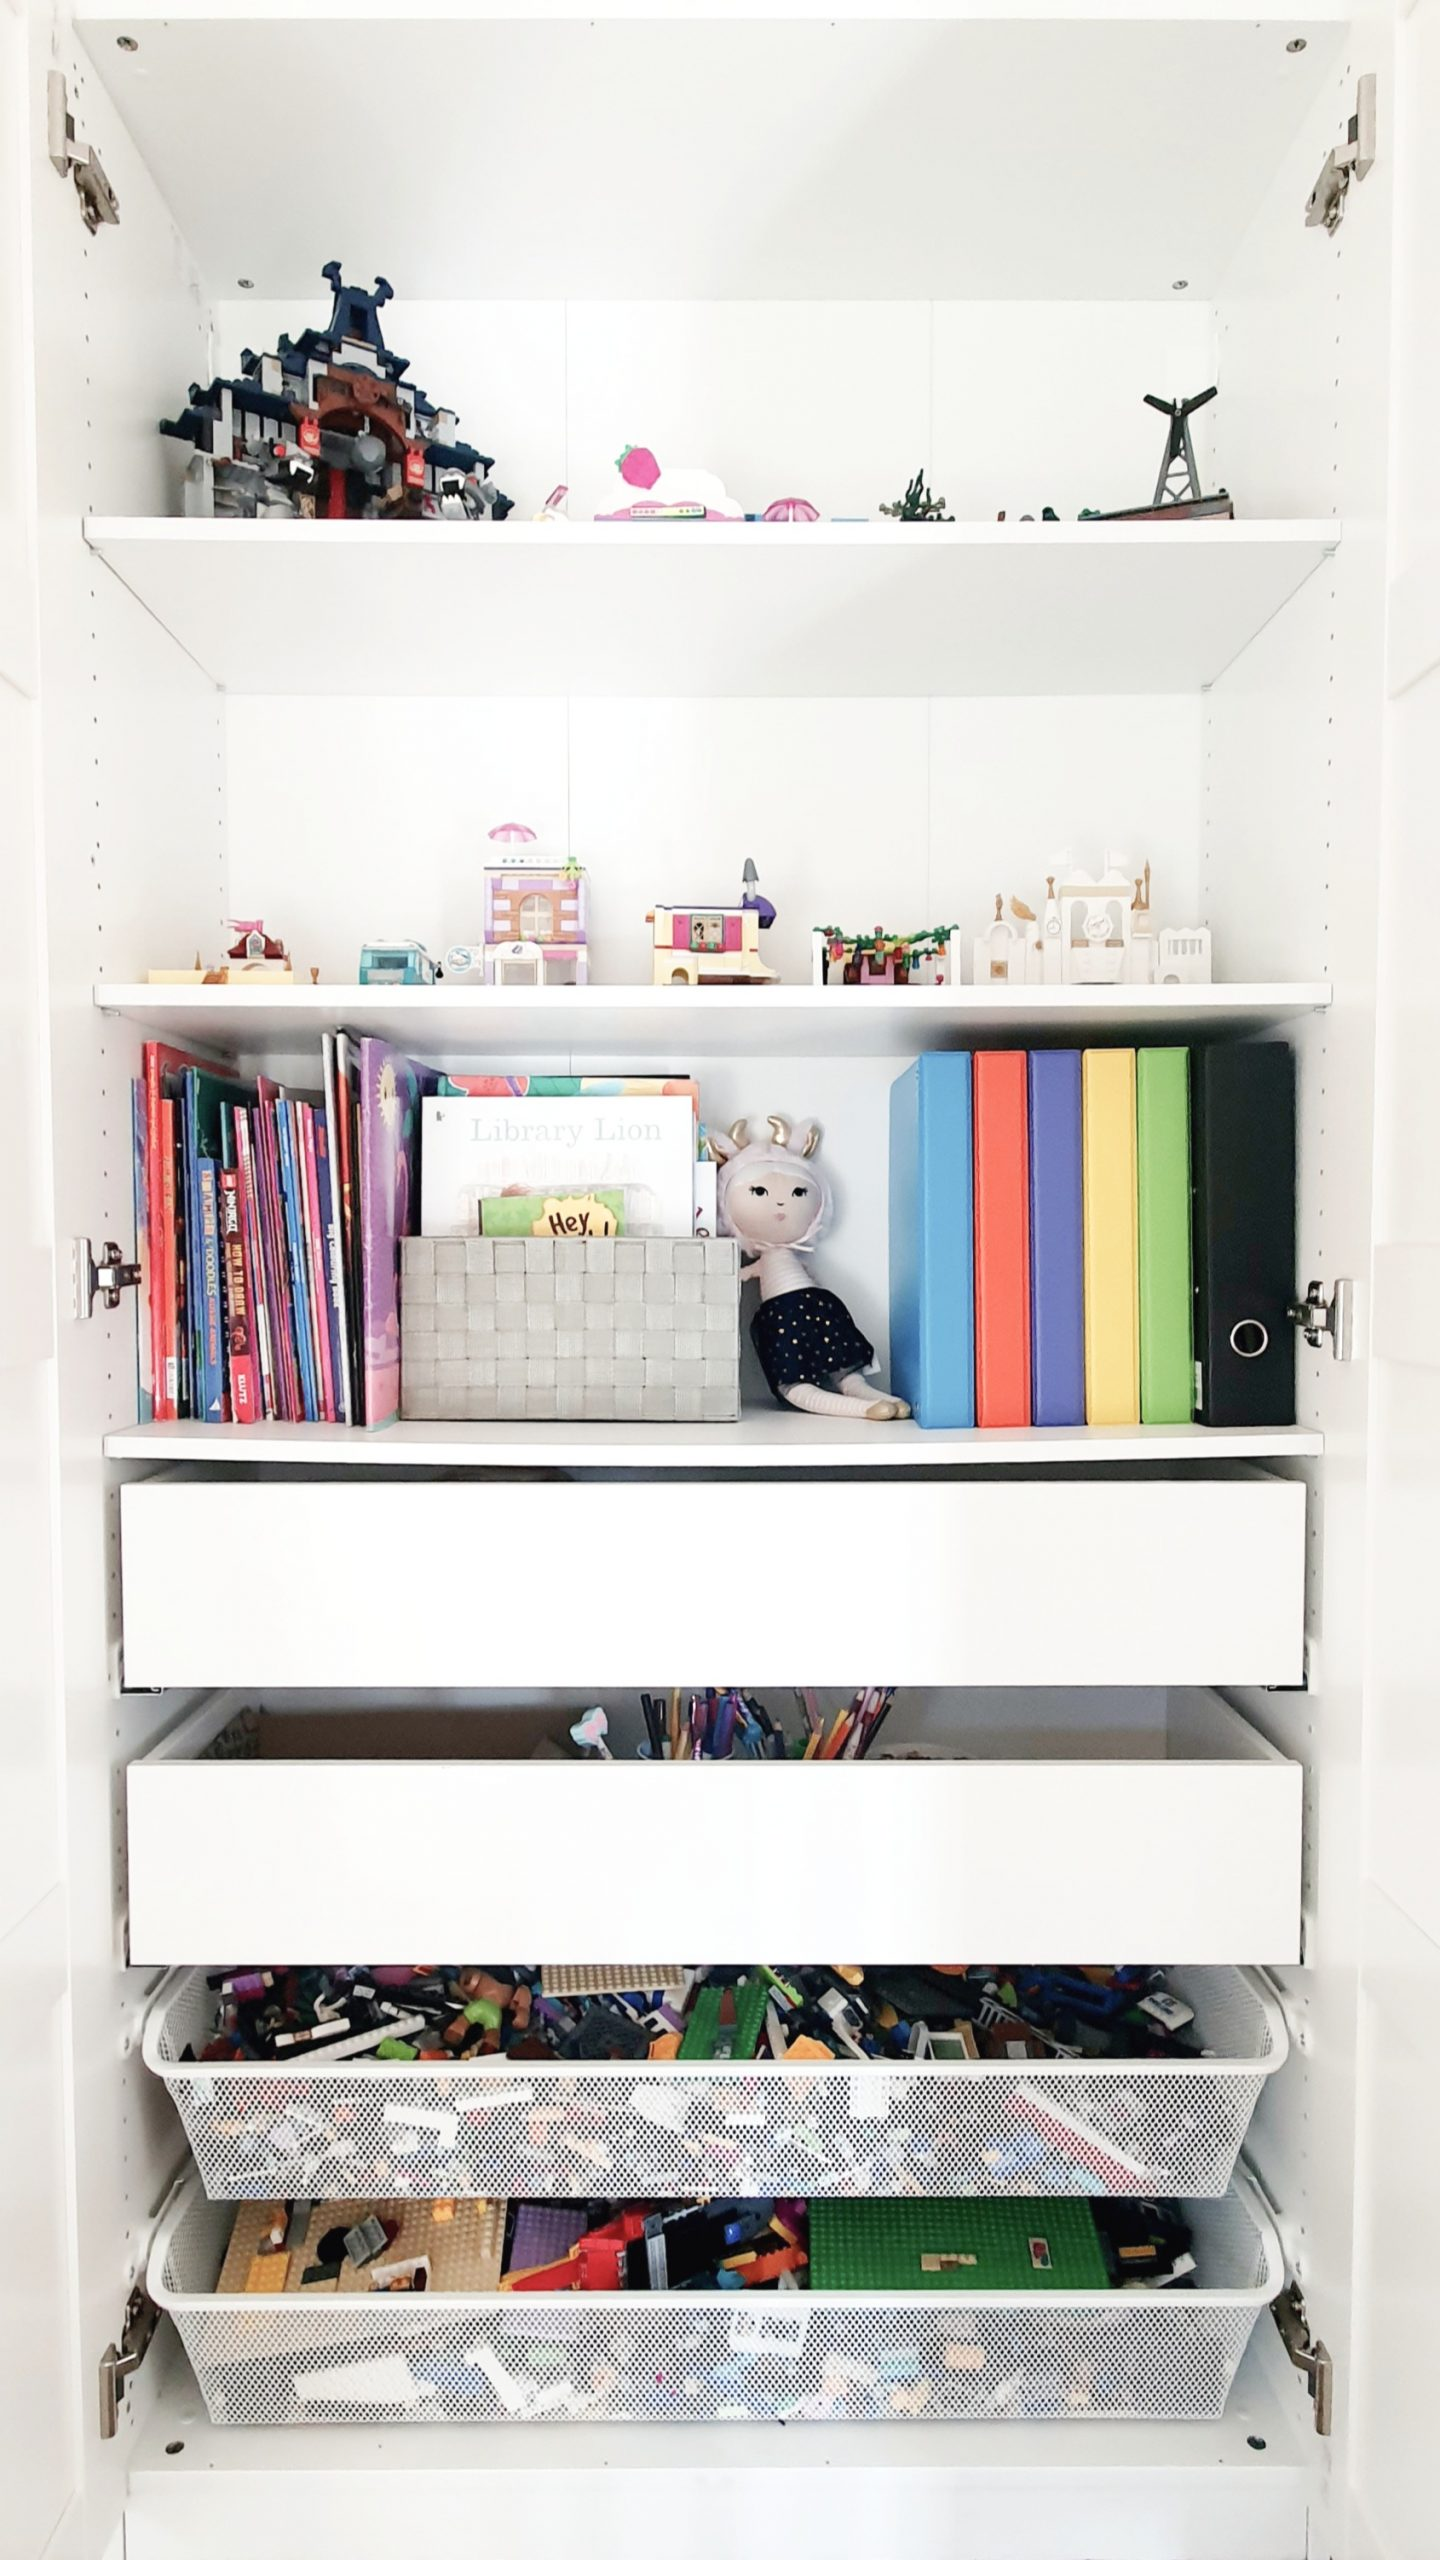 Our Little Playroom  -  Pax wardrobe toy storage.